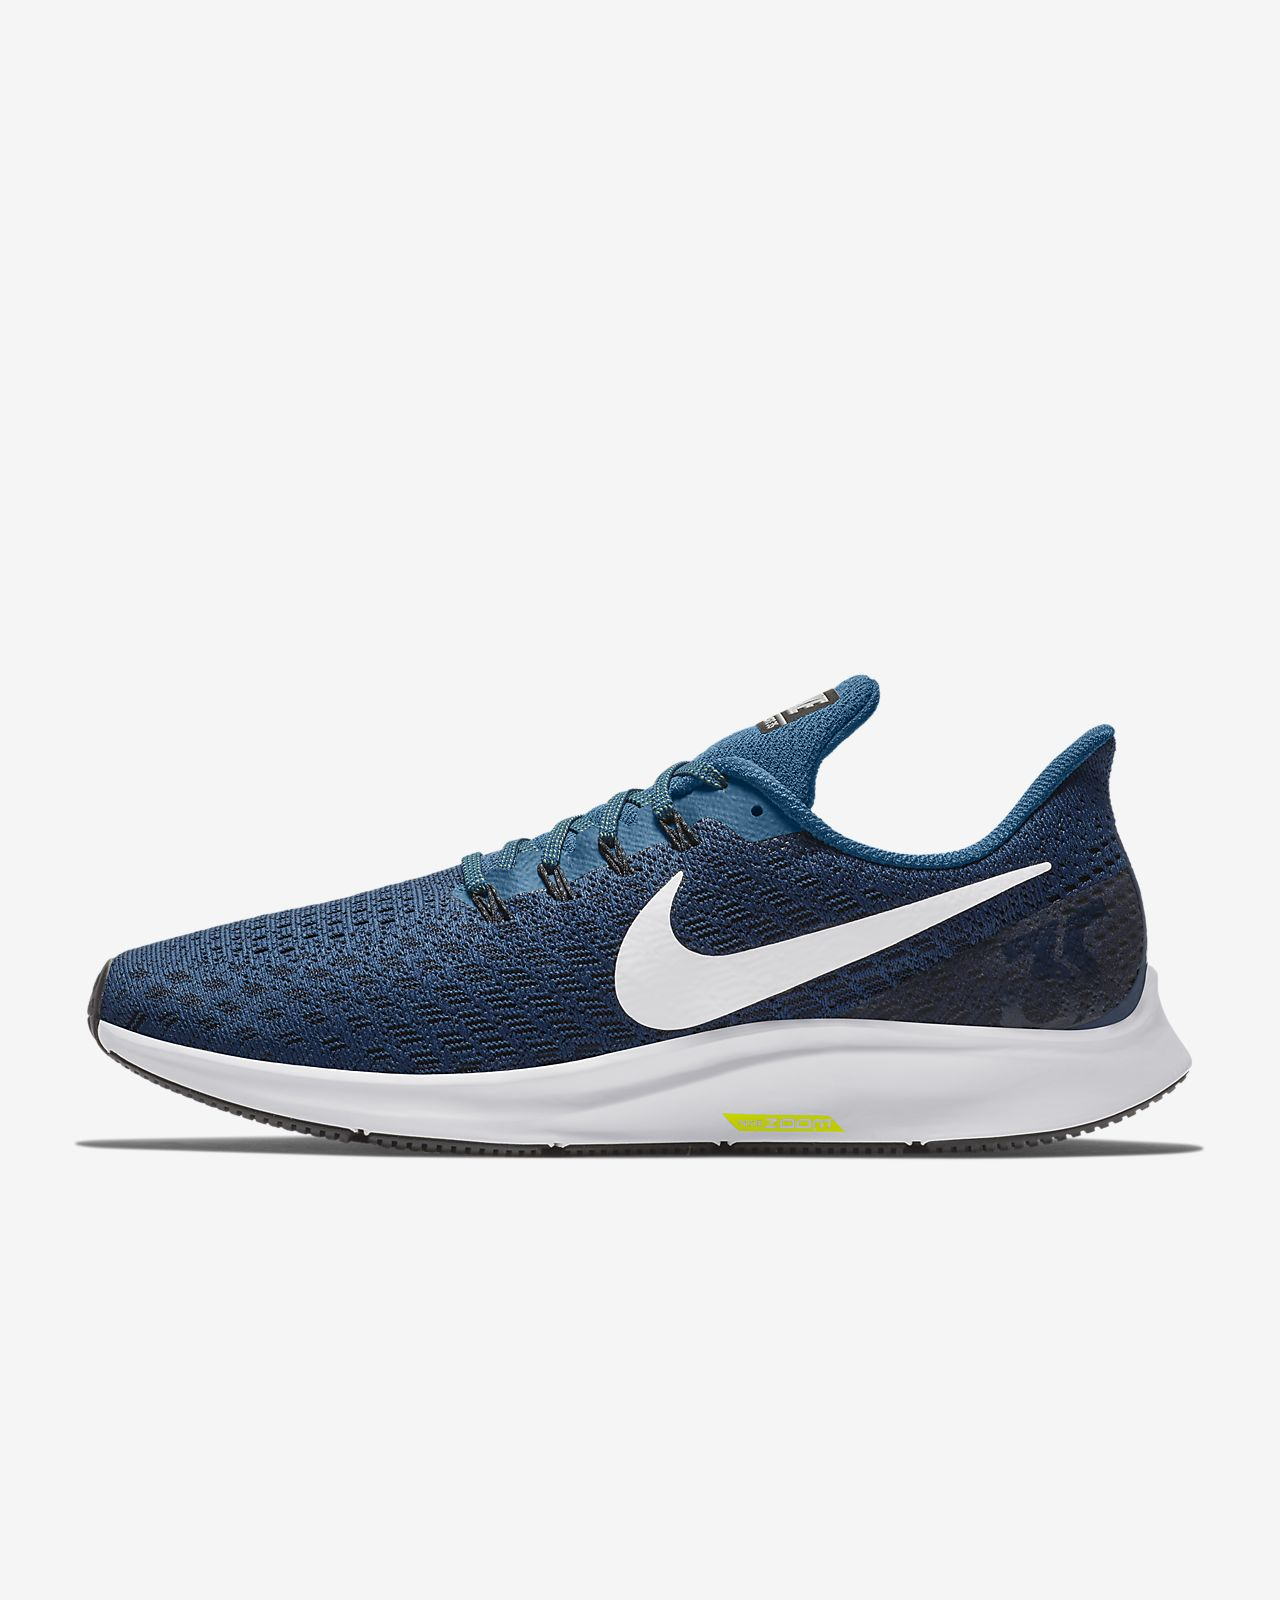 4e1d4c1e880f3 Nike Air Zoom Pegasus 35 Men's Running Shoe. Nike.com NO